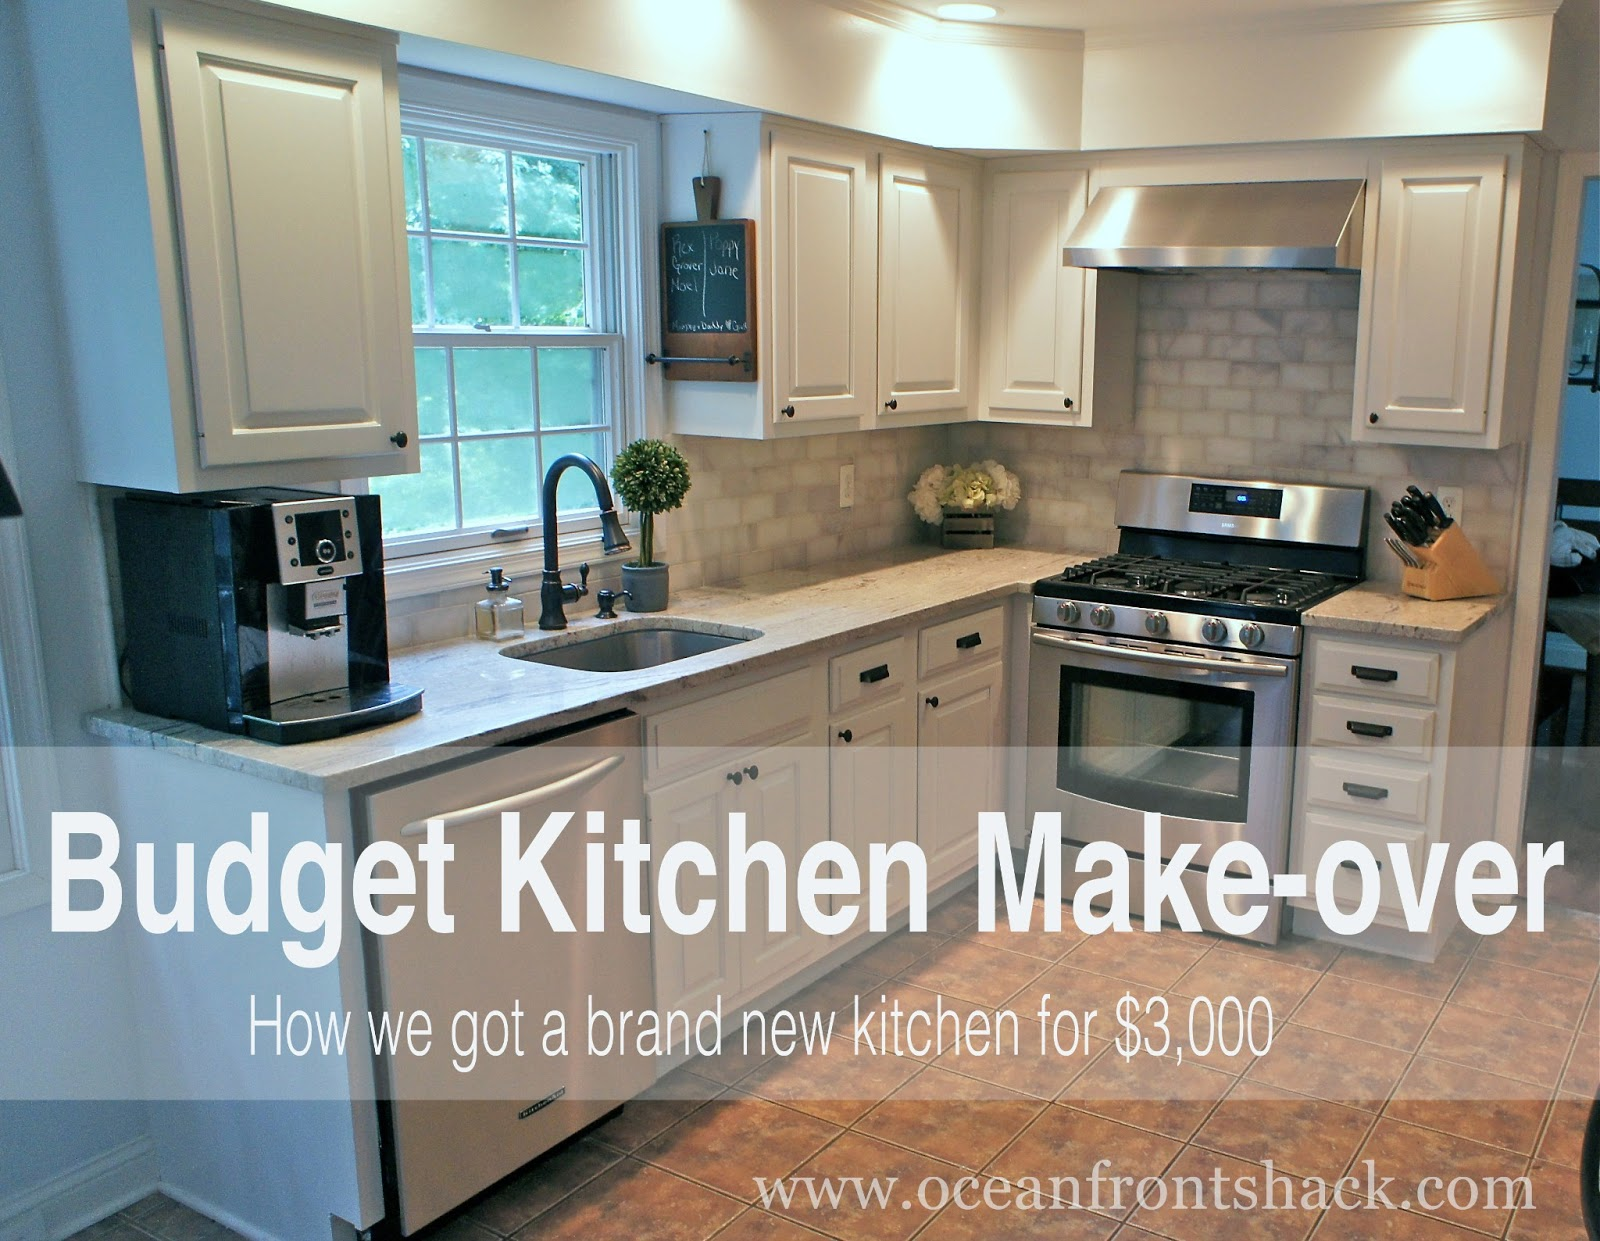 Budget kitchen makeover ocean front shack for Cheap kitchen makeover ideas